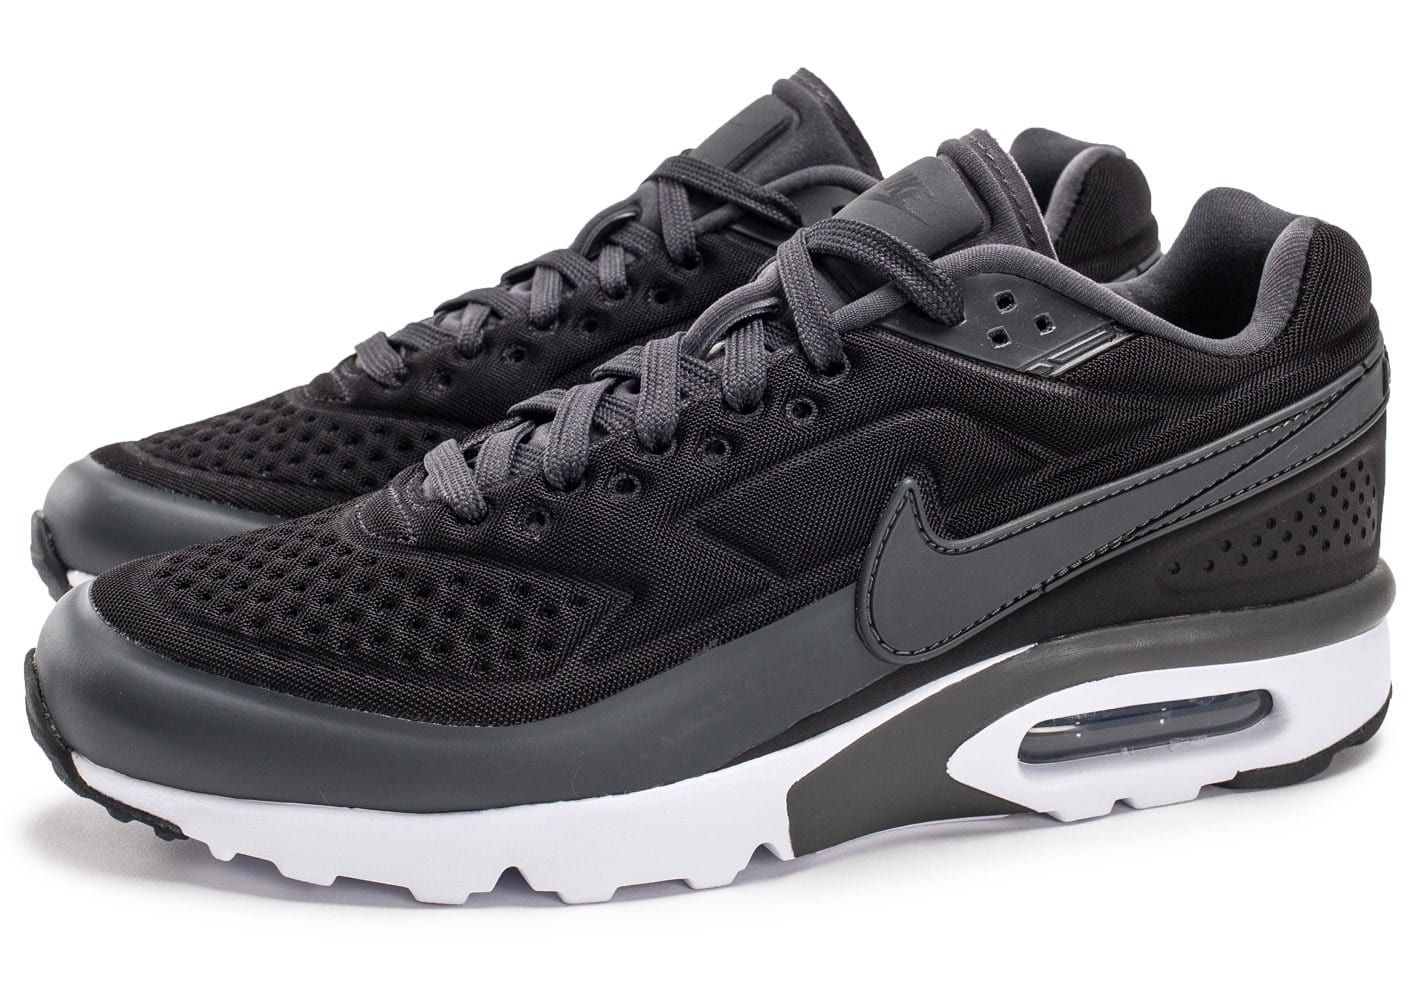 nike air max bw ultra noir anthracite chaussures baskets homme chausport. Black Bedroom Furniture Sets. Home Design Ideas